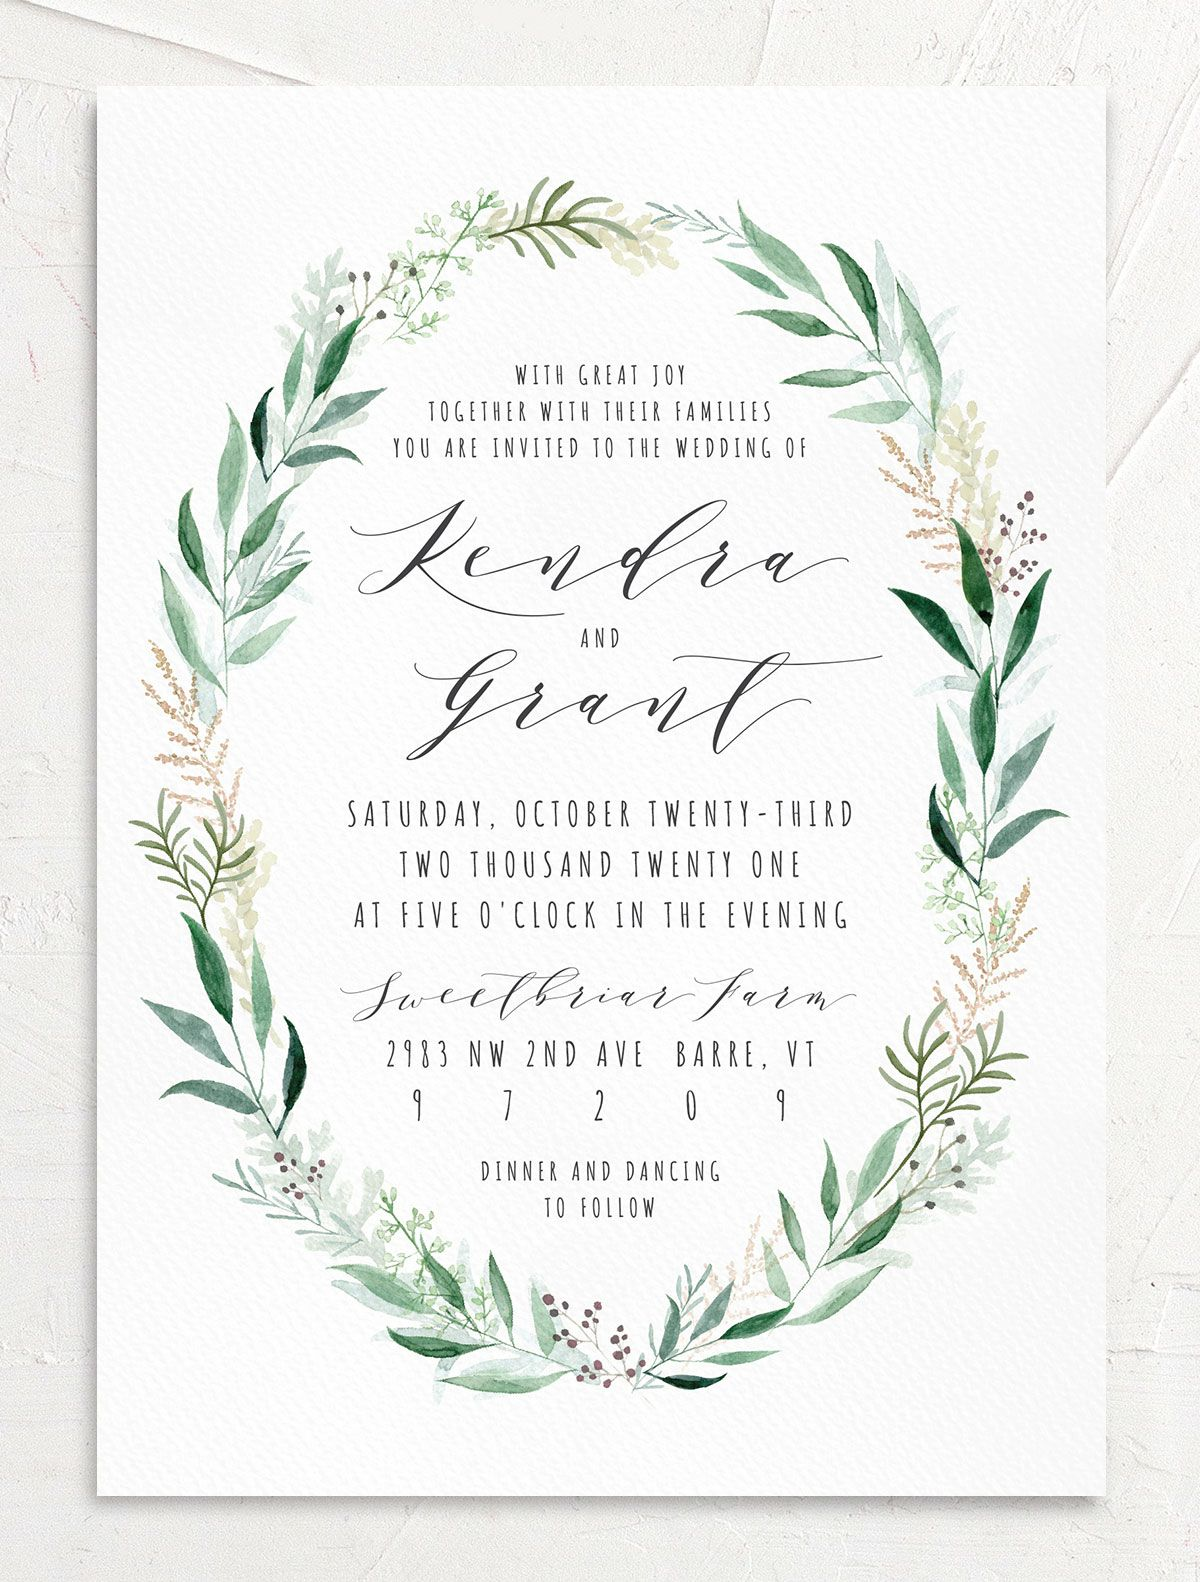 Rustic Wreath Wedding Invitation front